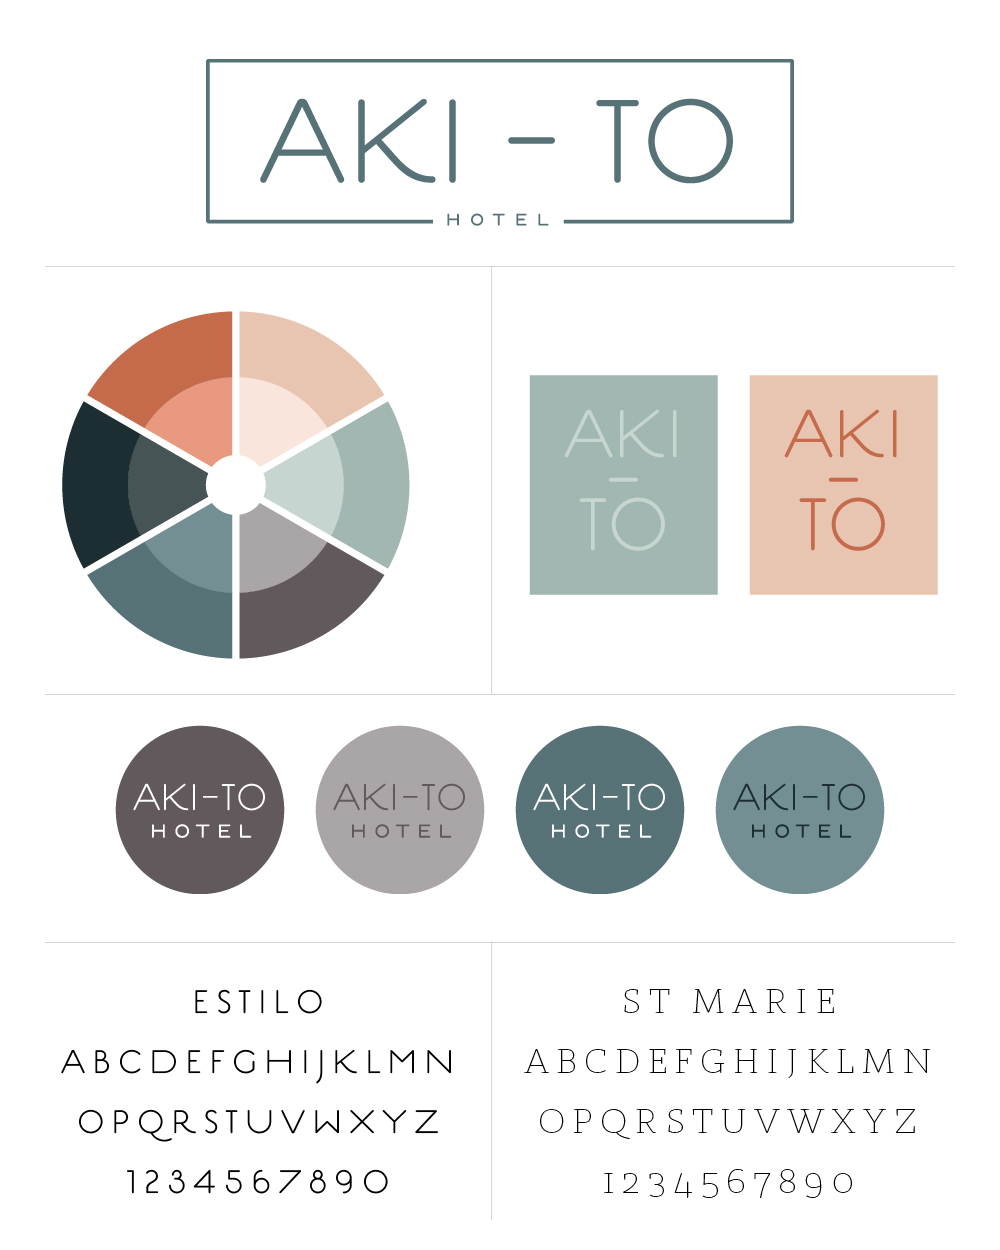 aki-to-logo-design